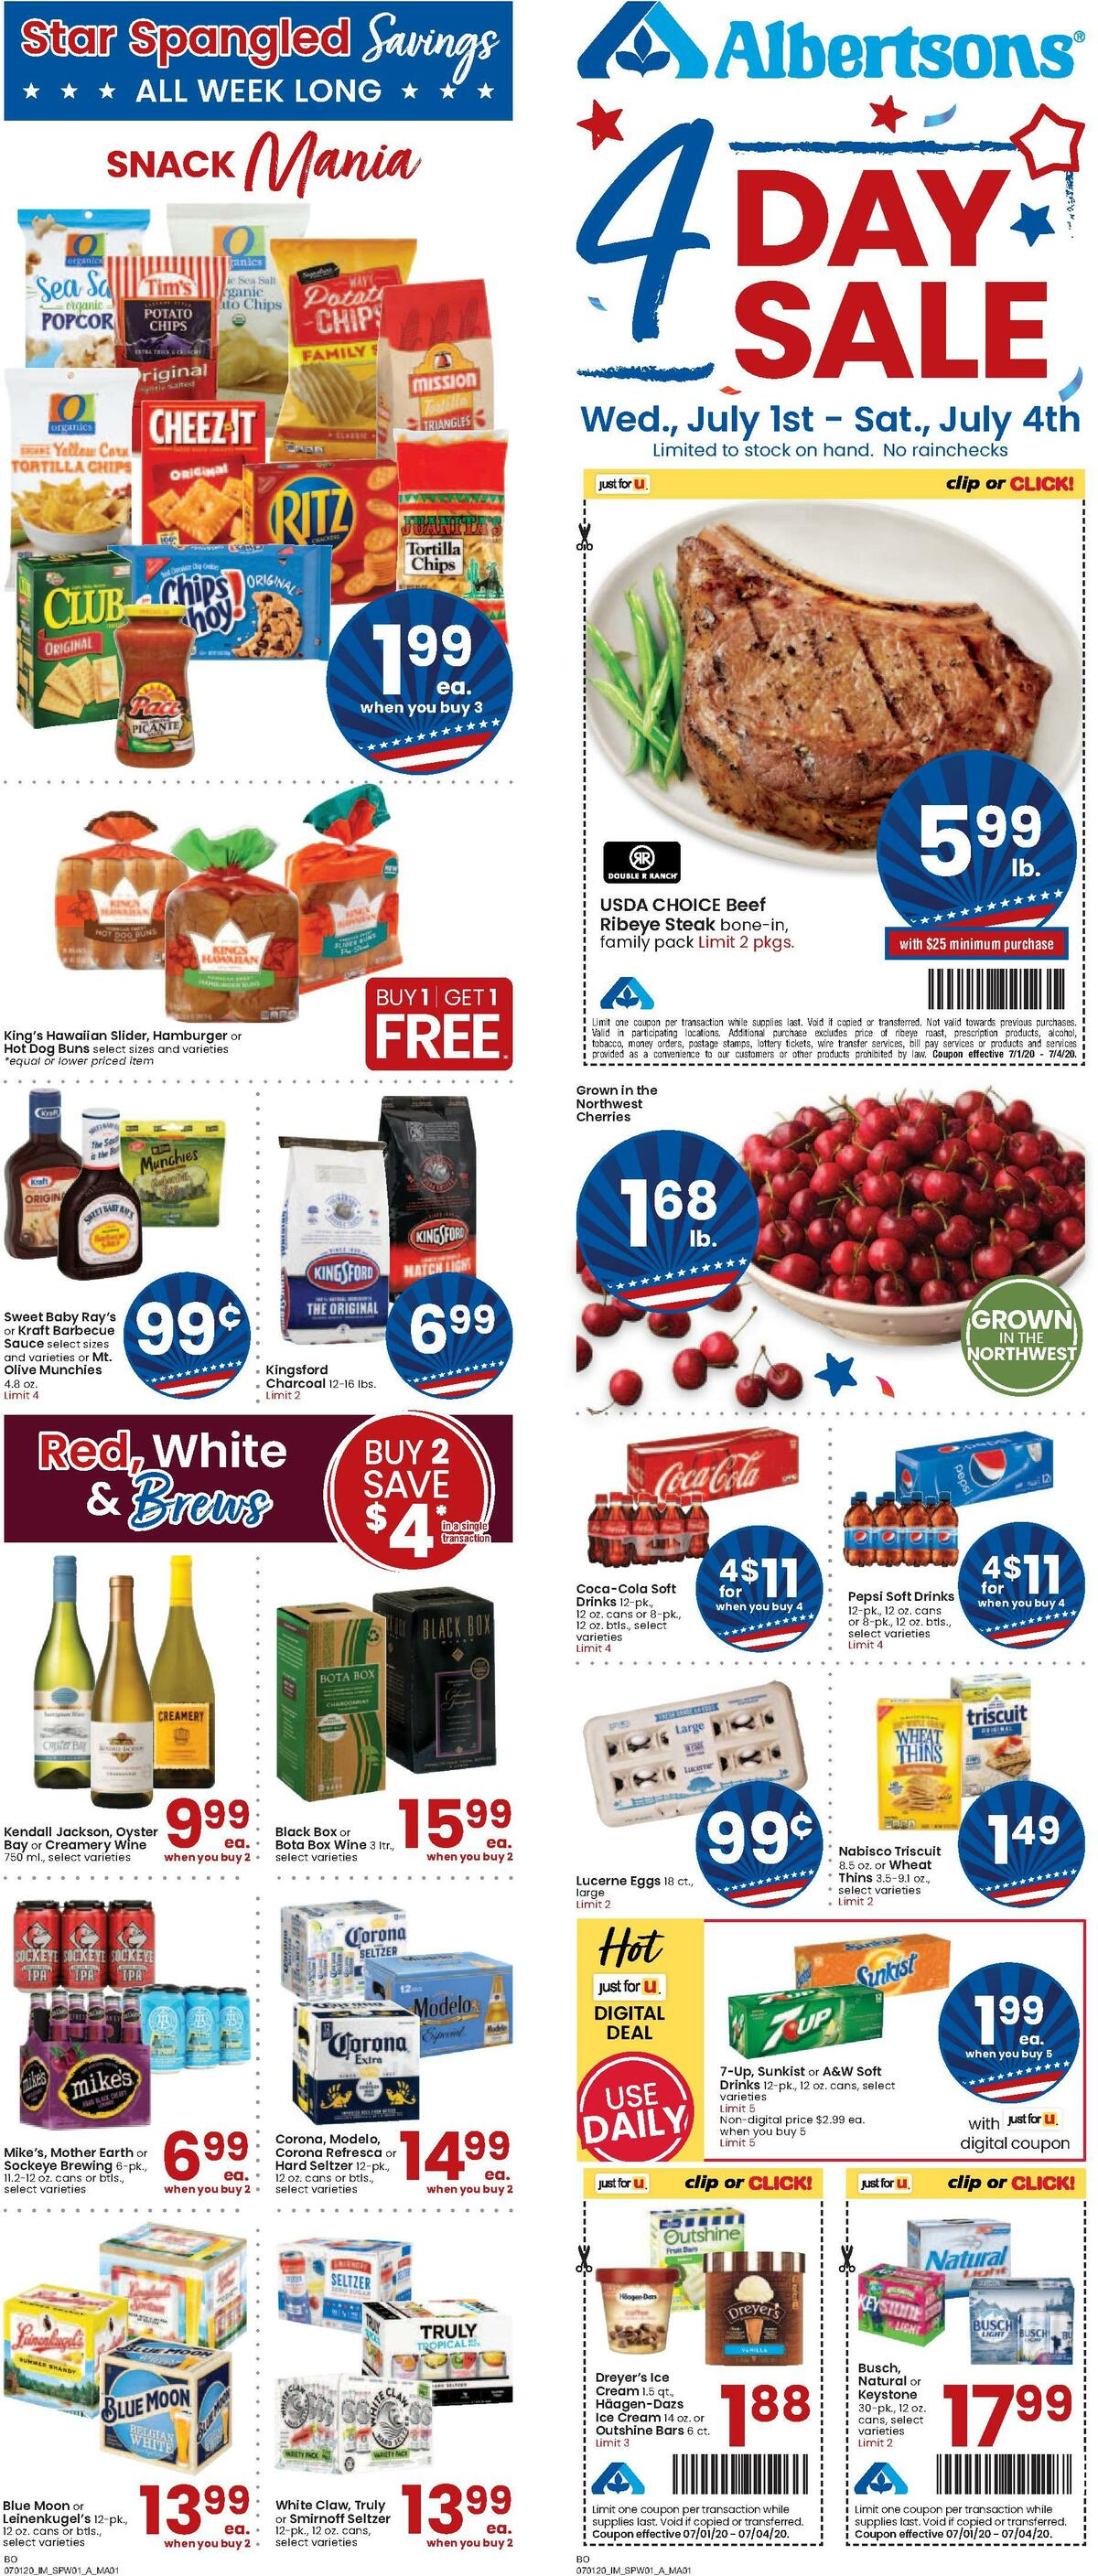 Albertsons Weekly Ad from July 1